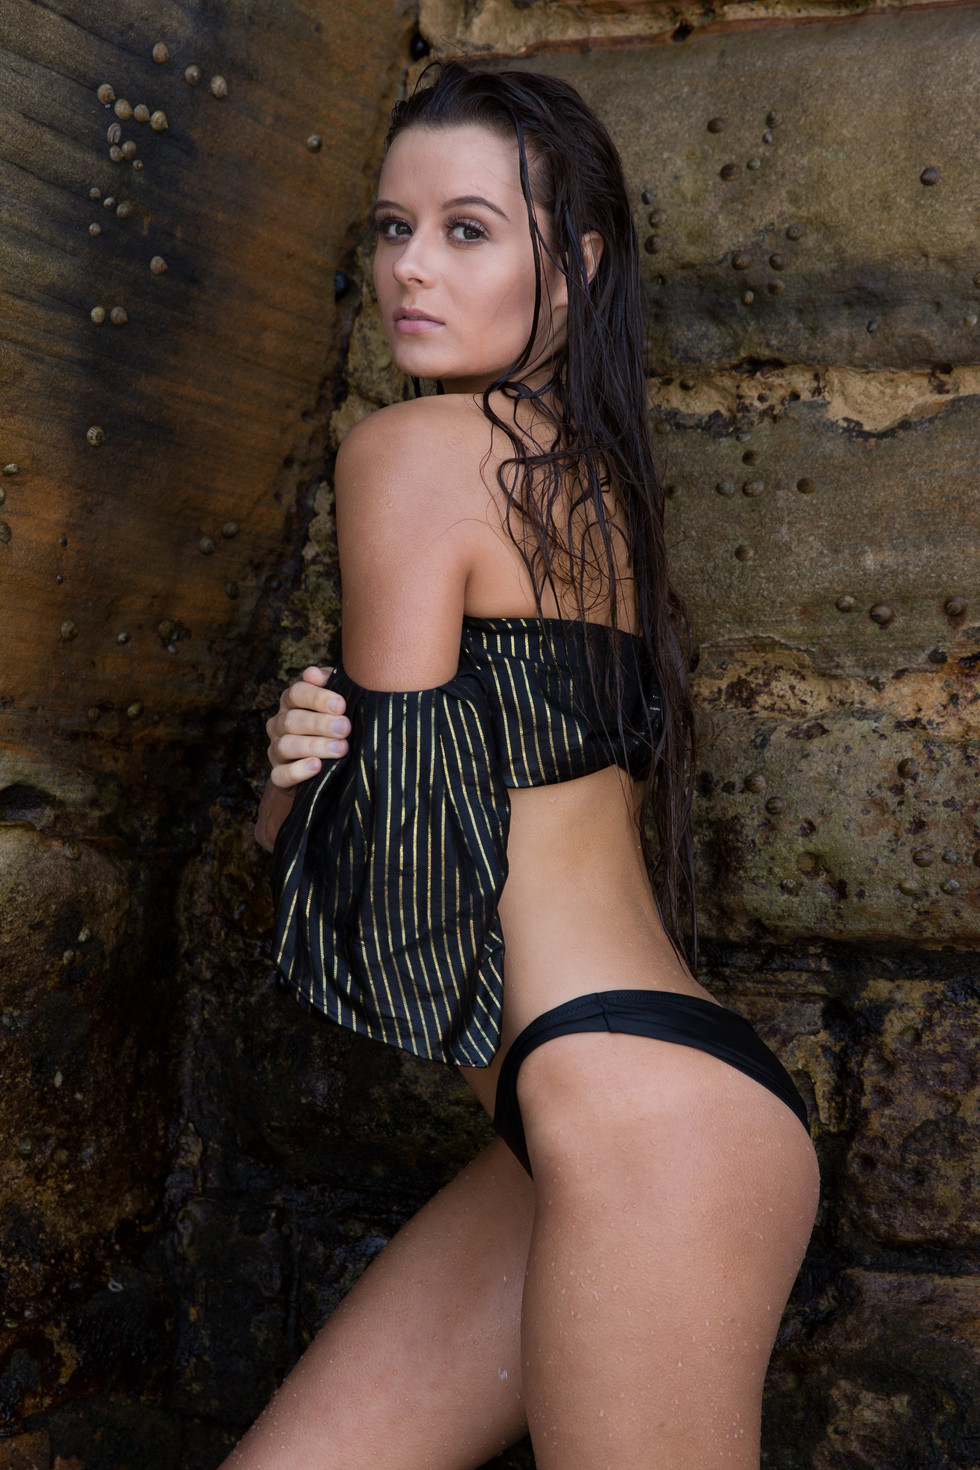 Alecia__by_CoogeePhotography-0098146.jpg